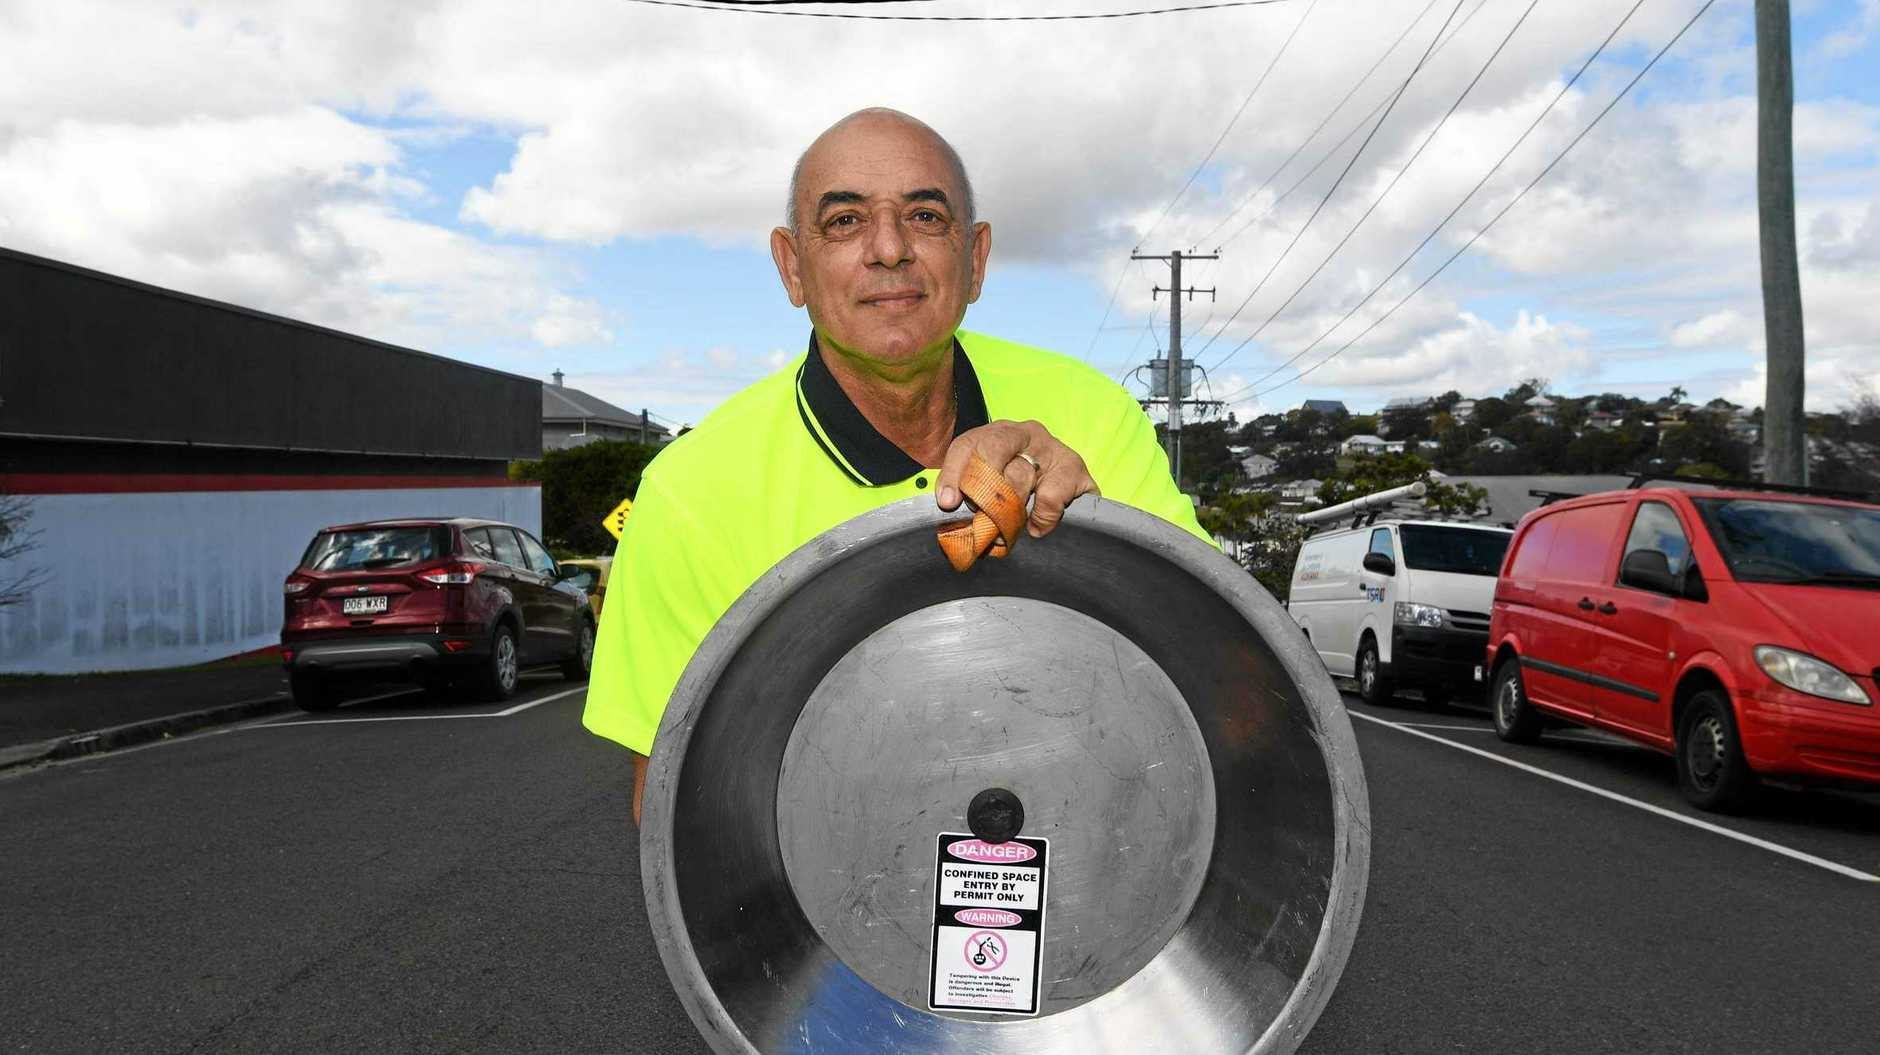 IDEA OVERFLOW: Gympie's William Bona is keeping Australia's floodwaters clean with his Rainstopper manhole insert.